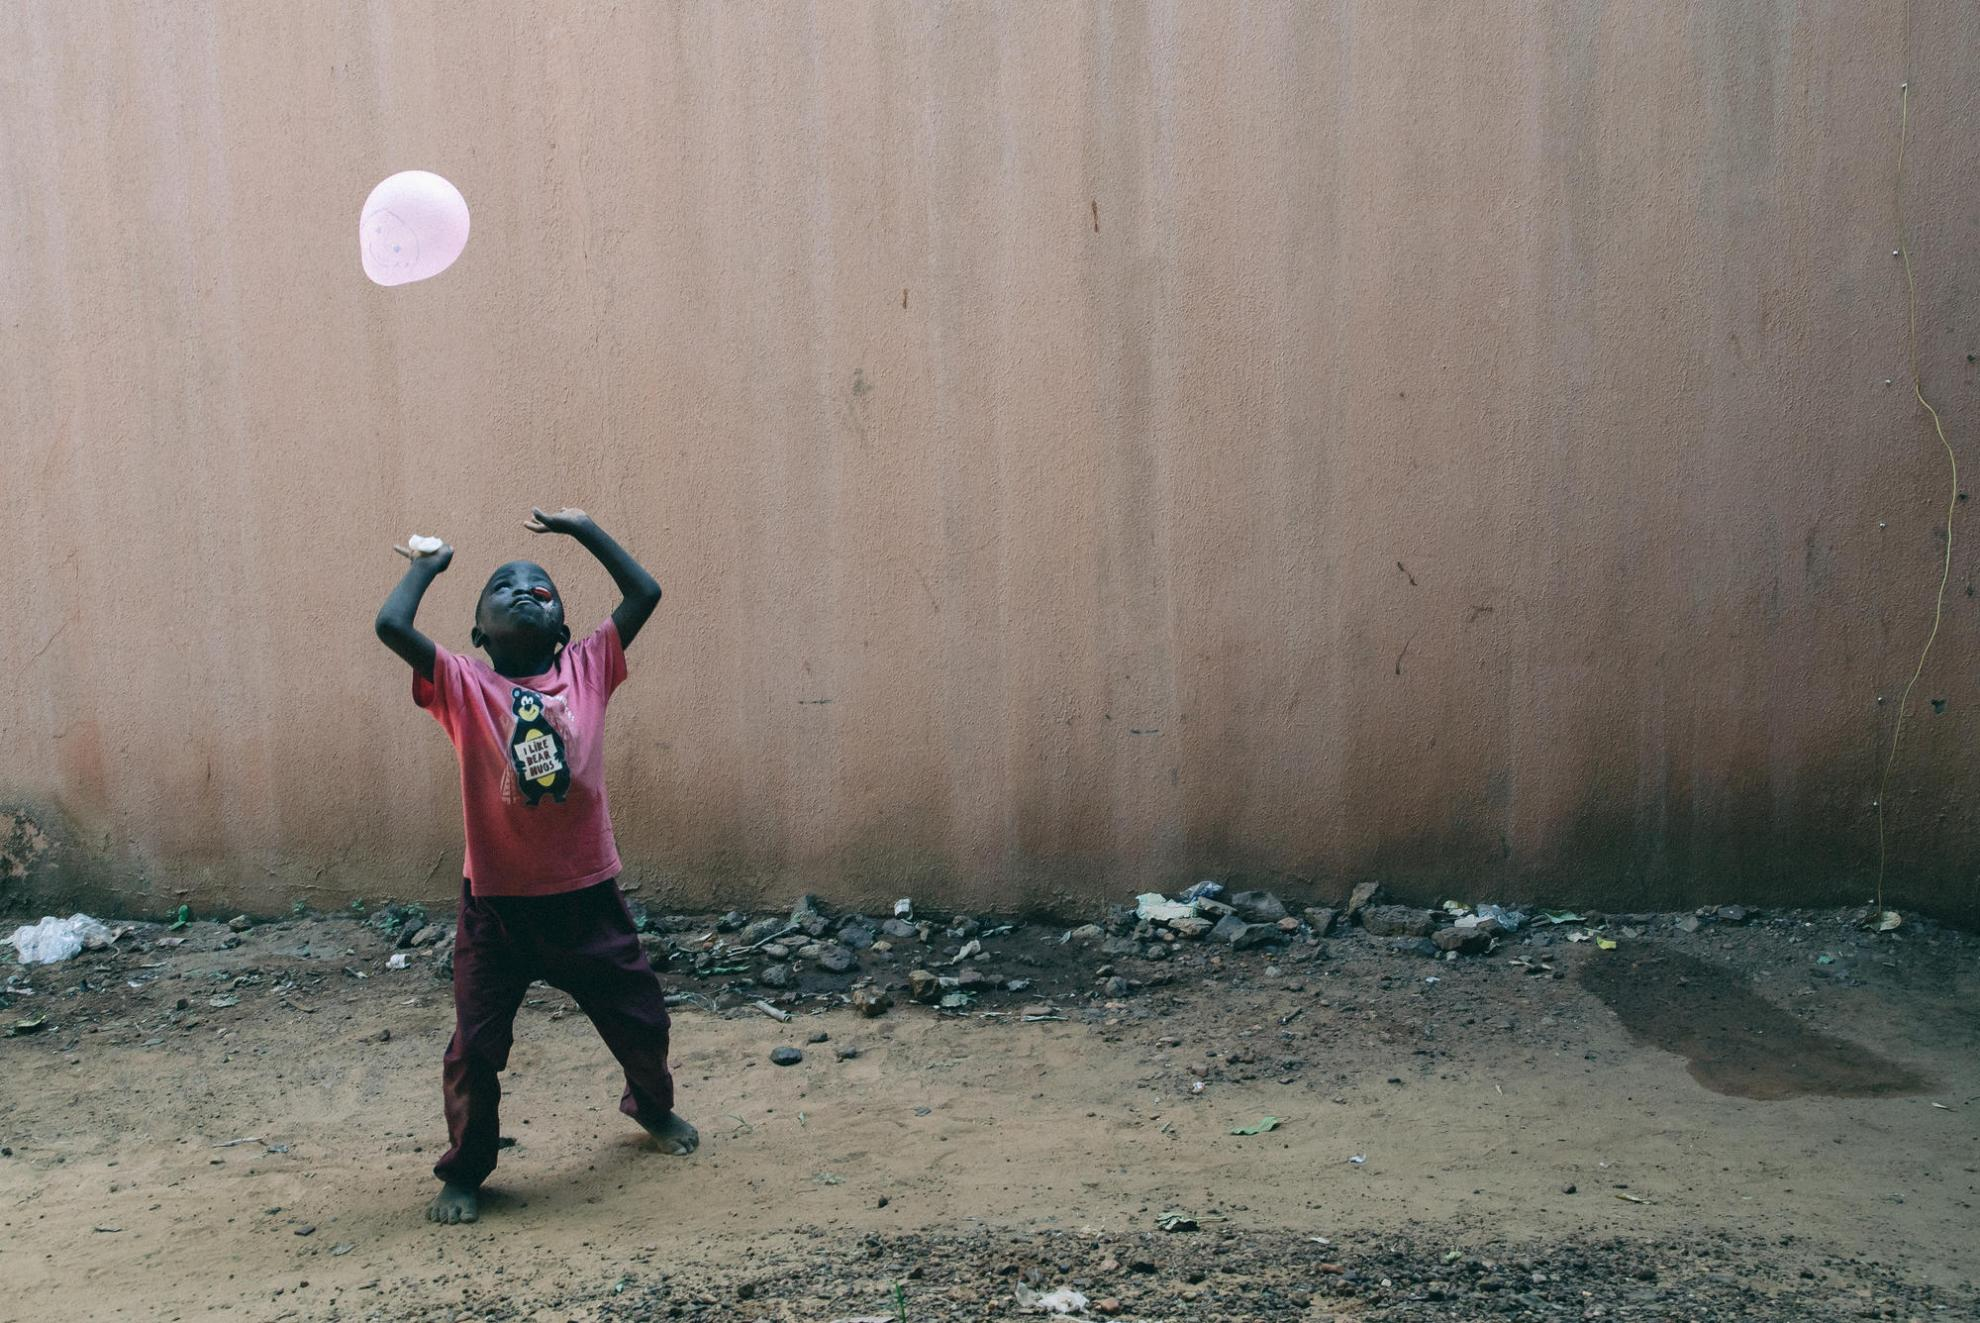 At Sokoto hospital, eight-year-old Umar plays with a balloon while waiting for surgery